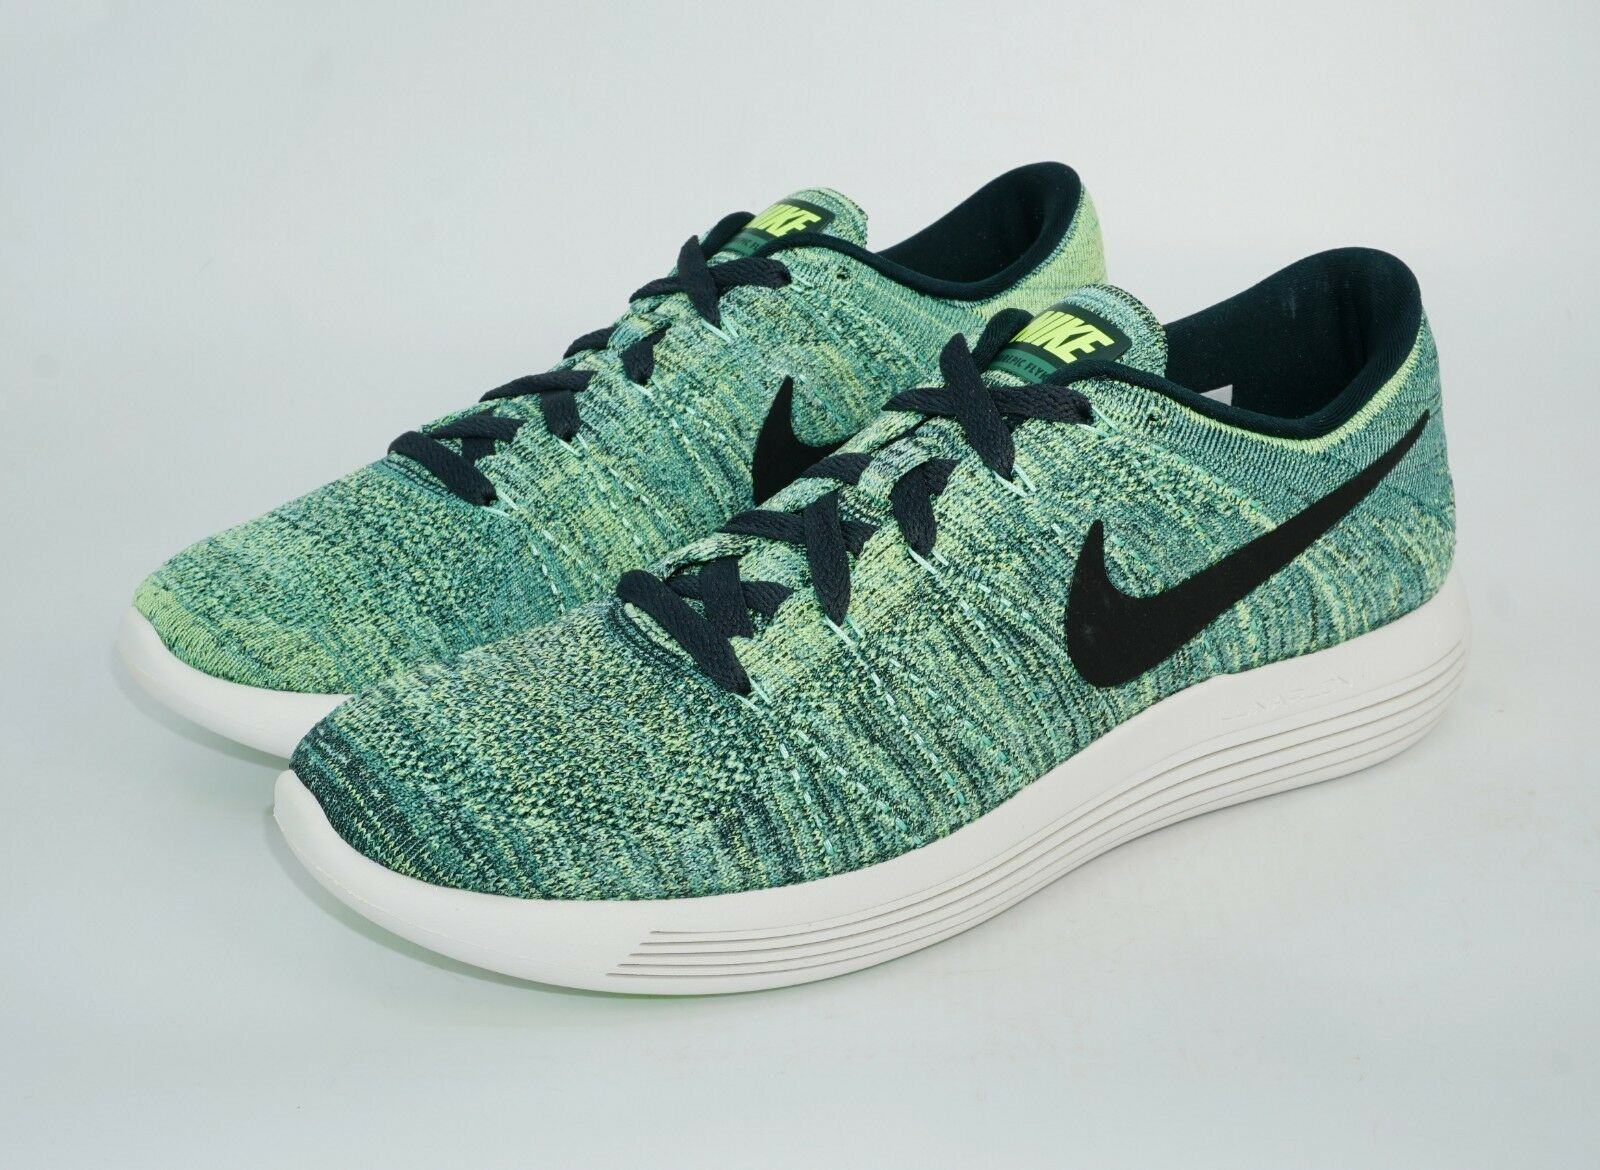 4342cc2a9ded Nike Men s LunarEpic Low Flyknit Running Shoes